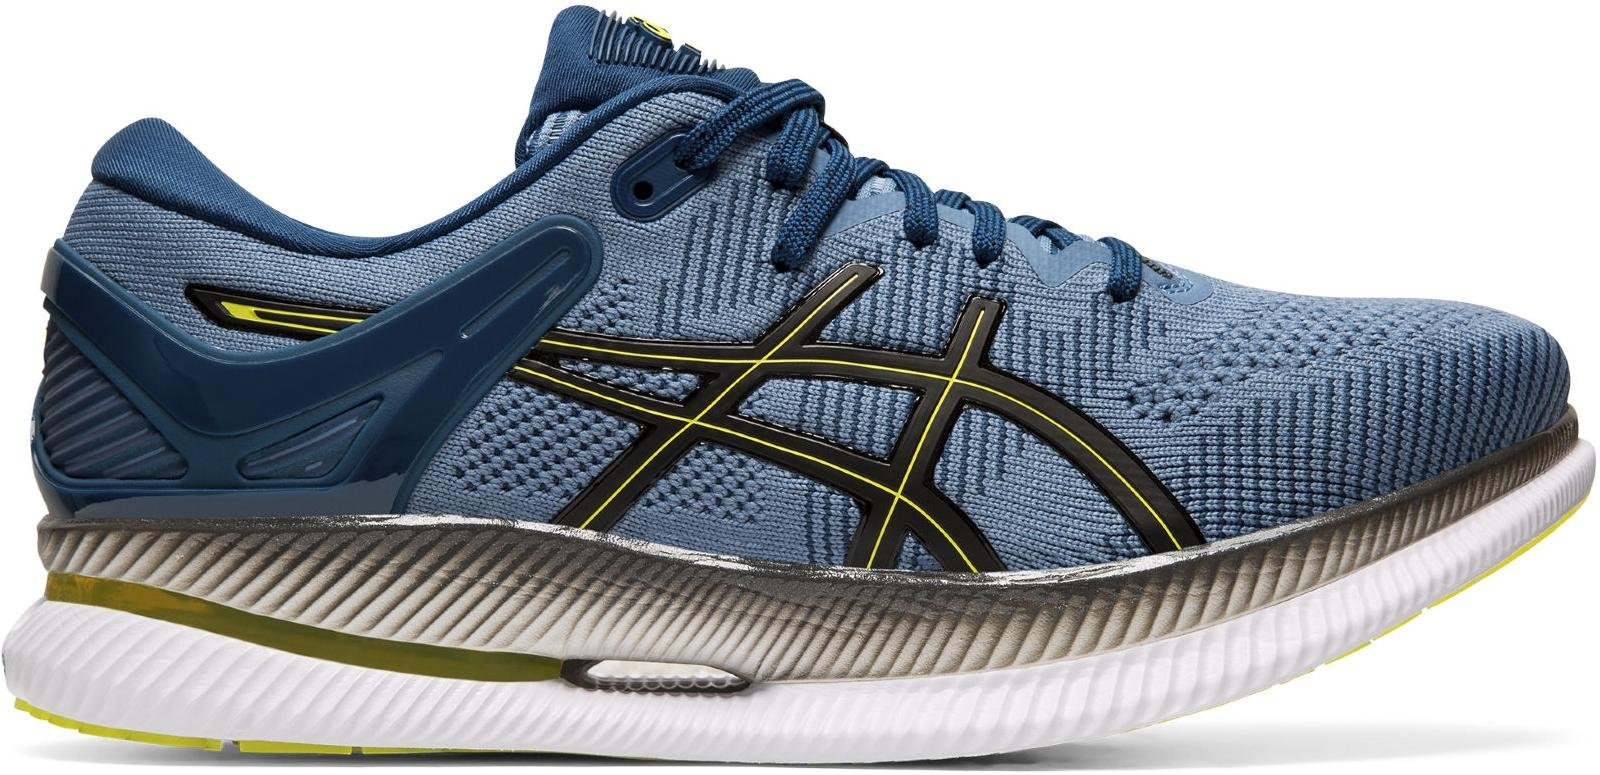 Zapatillas de running Asics MetaRide